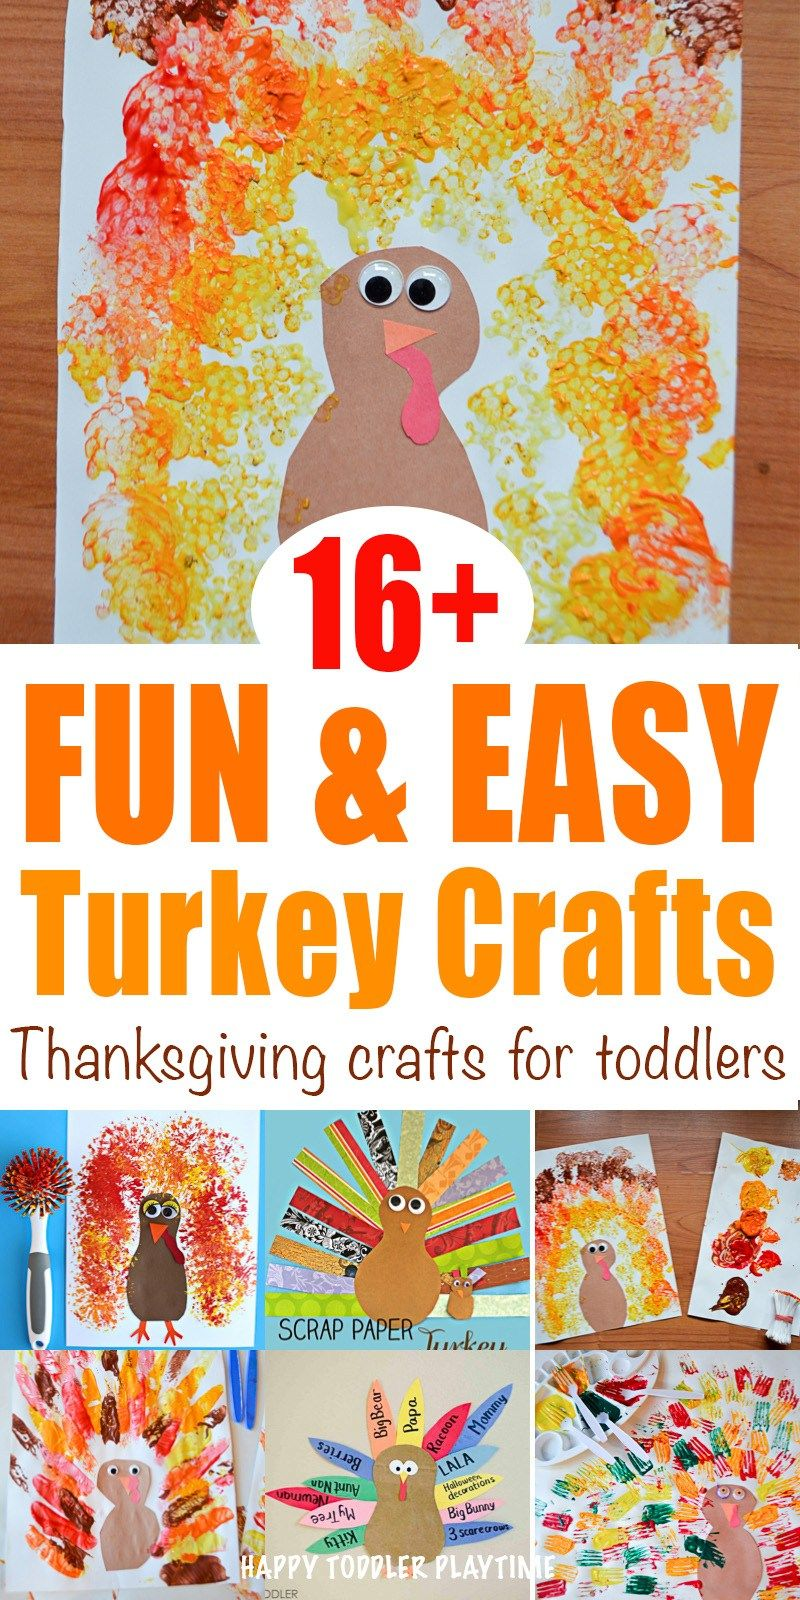 20+ Fun & Easy Thanksgiving Crafts - HAPPY TODDLER PLAYTIME